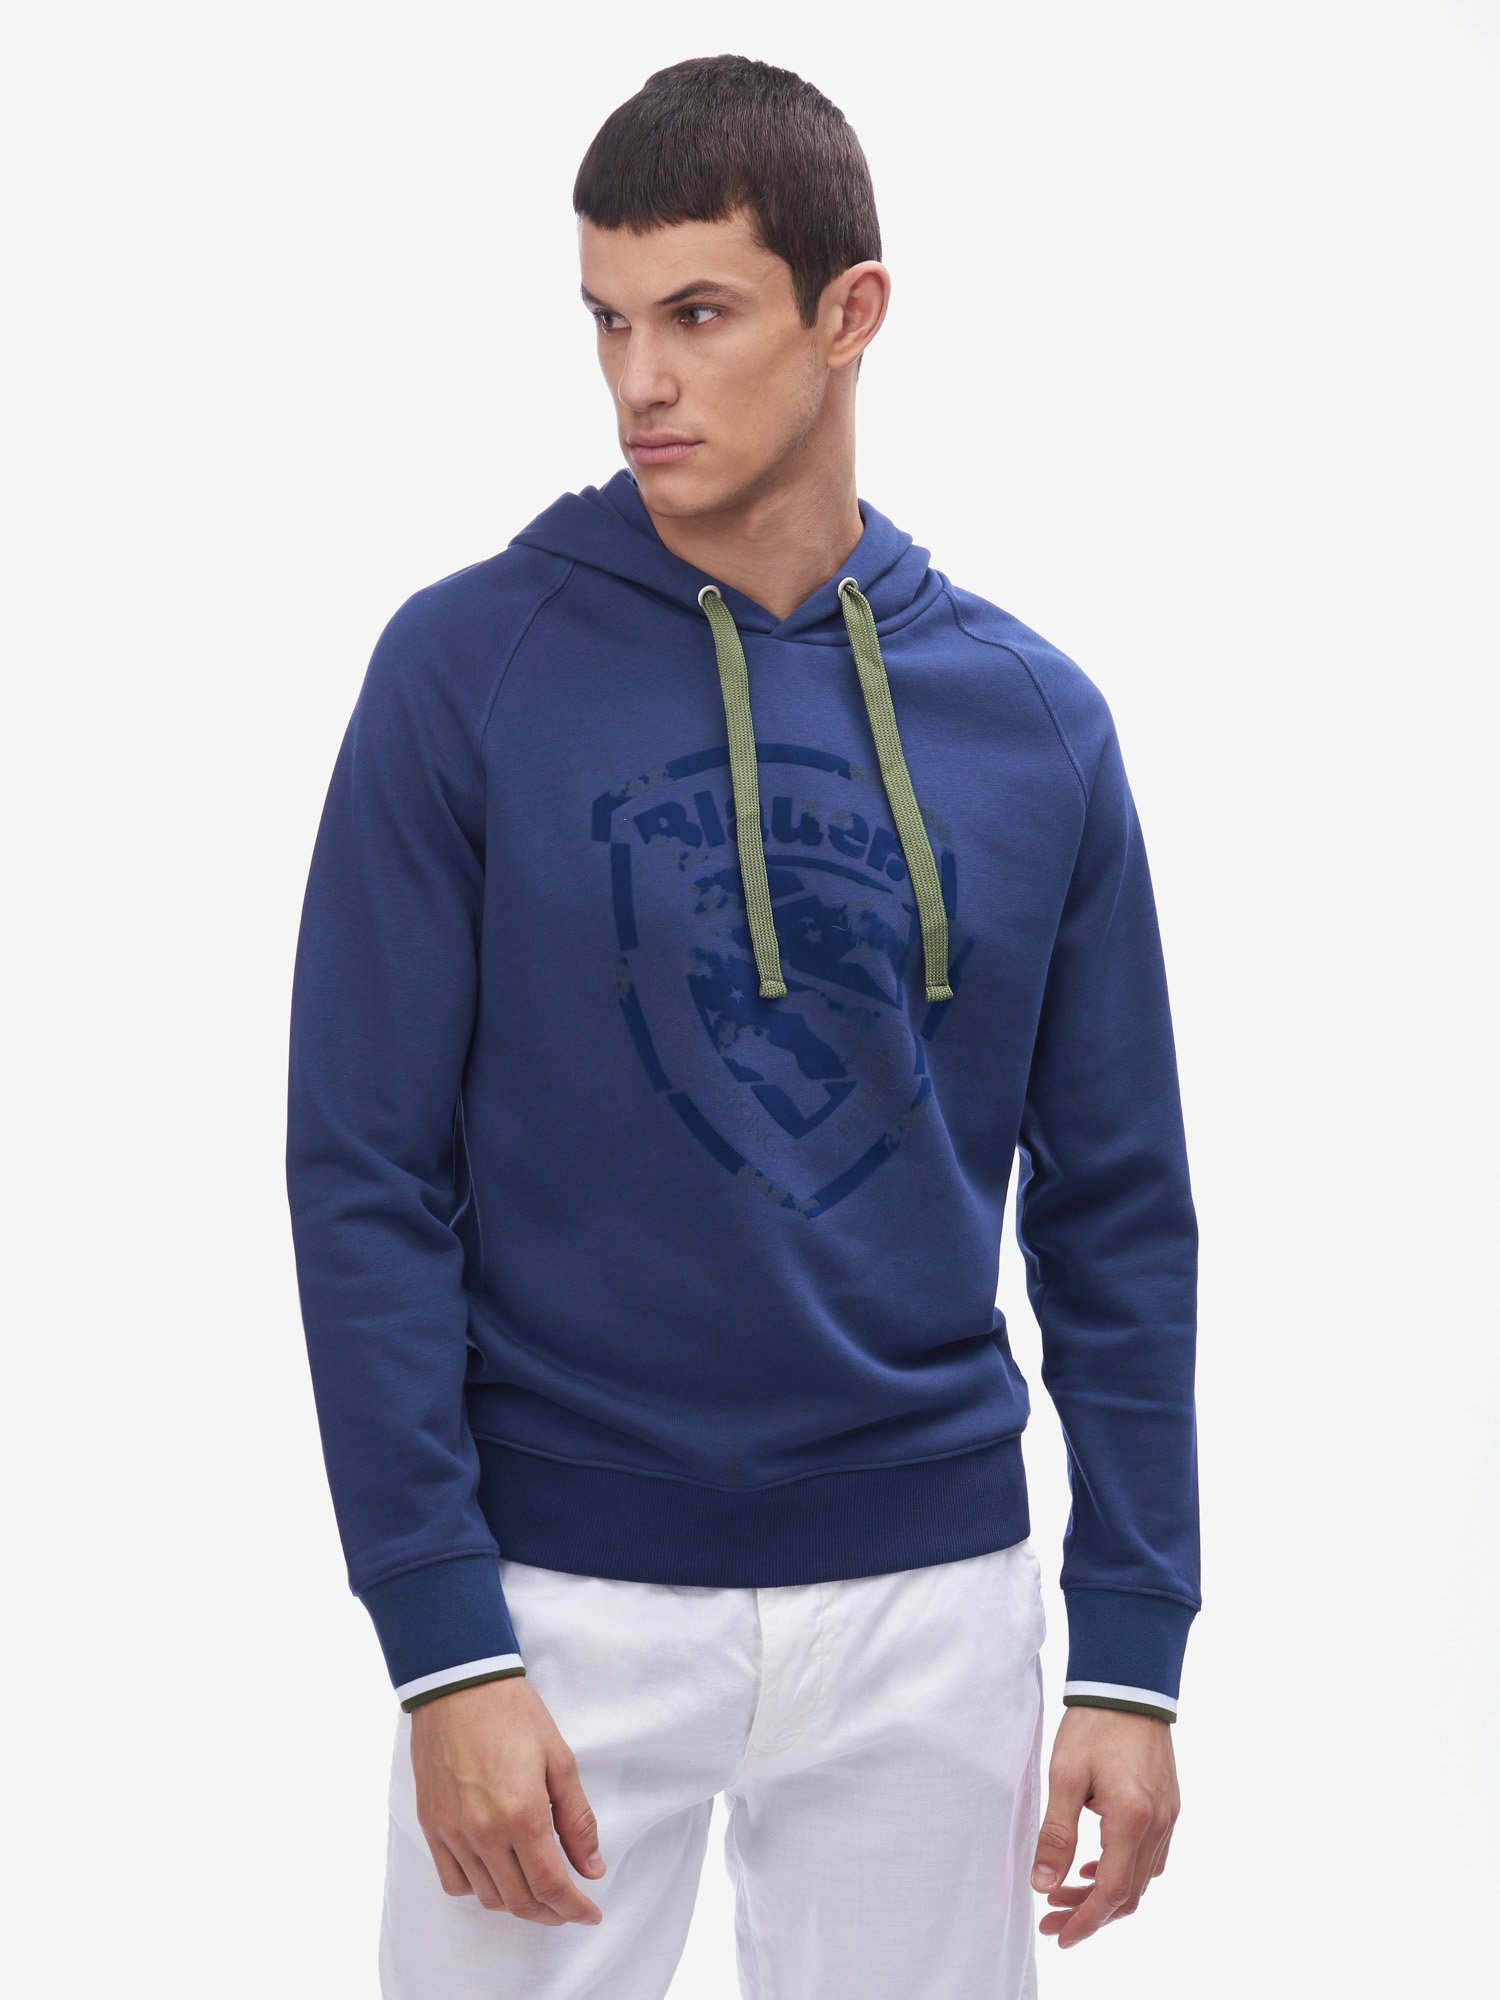 HOODED SWEATSHIRT - Blauer